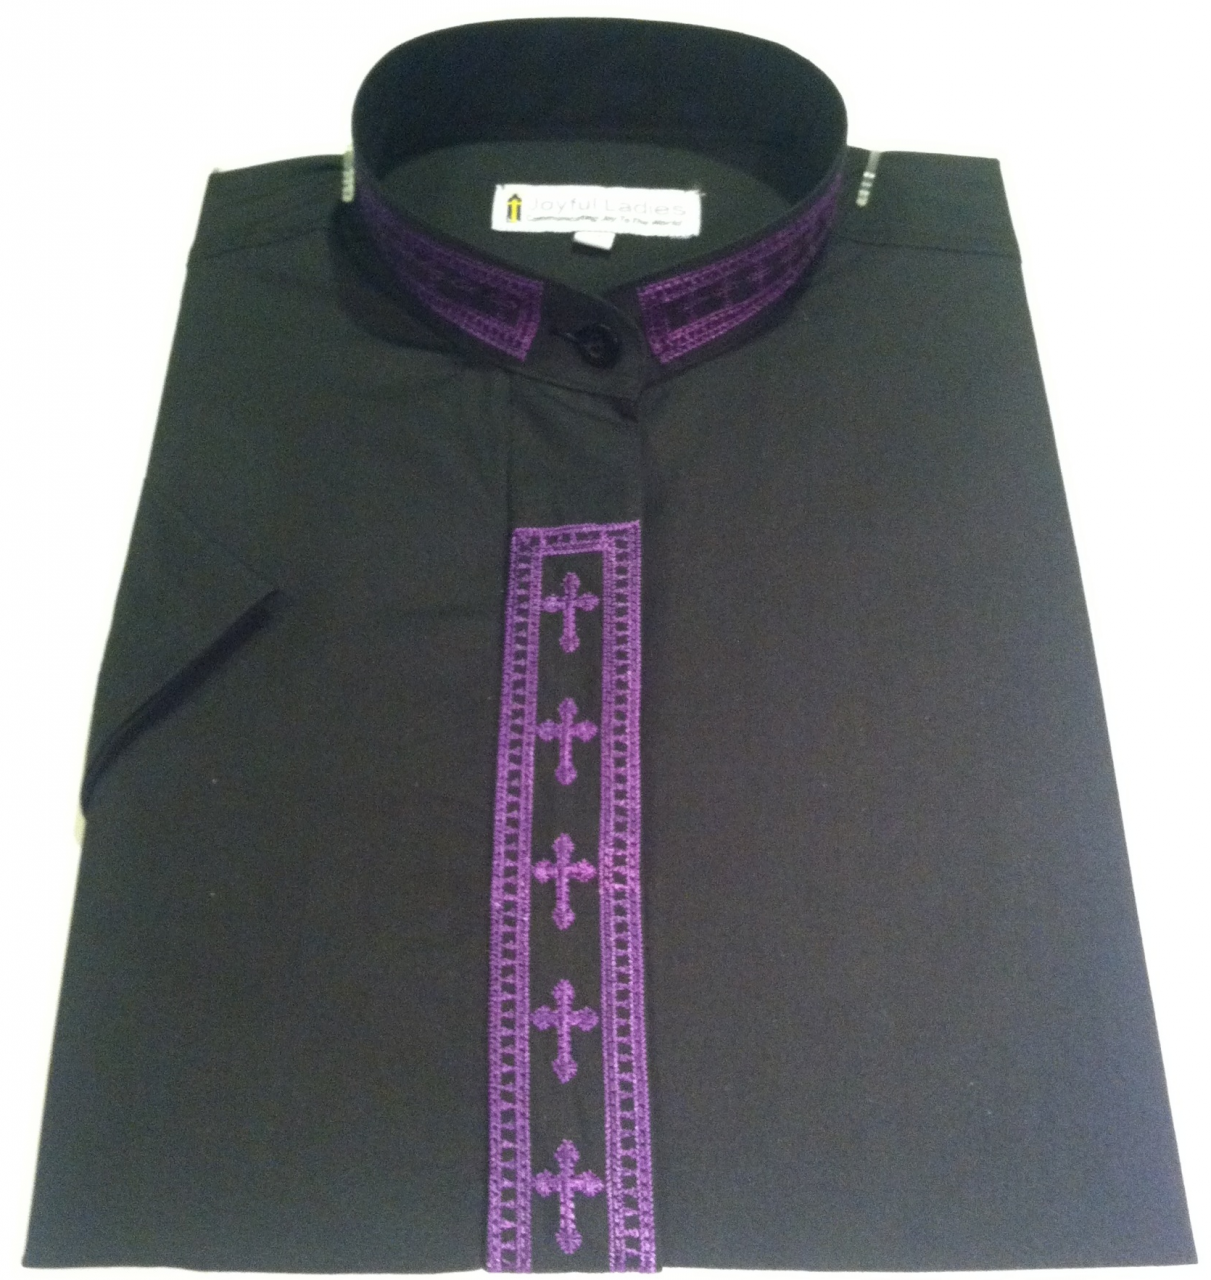 759. Women's Short-Sleeve Clergy Shirt With Fine Embroidery - Black/Purple